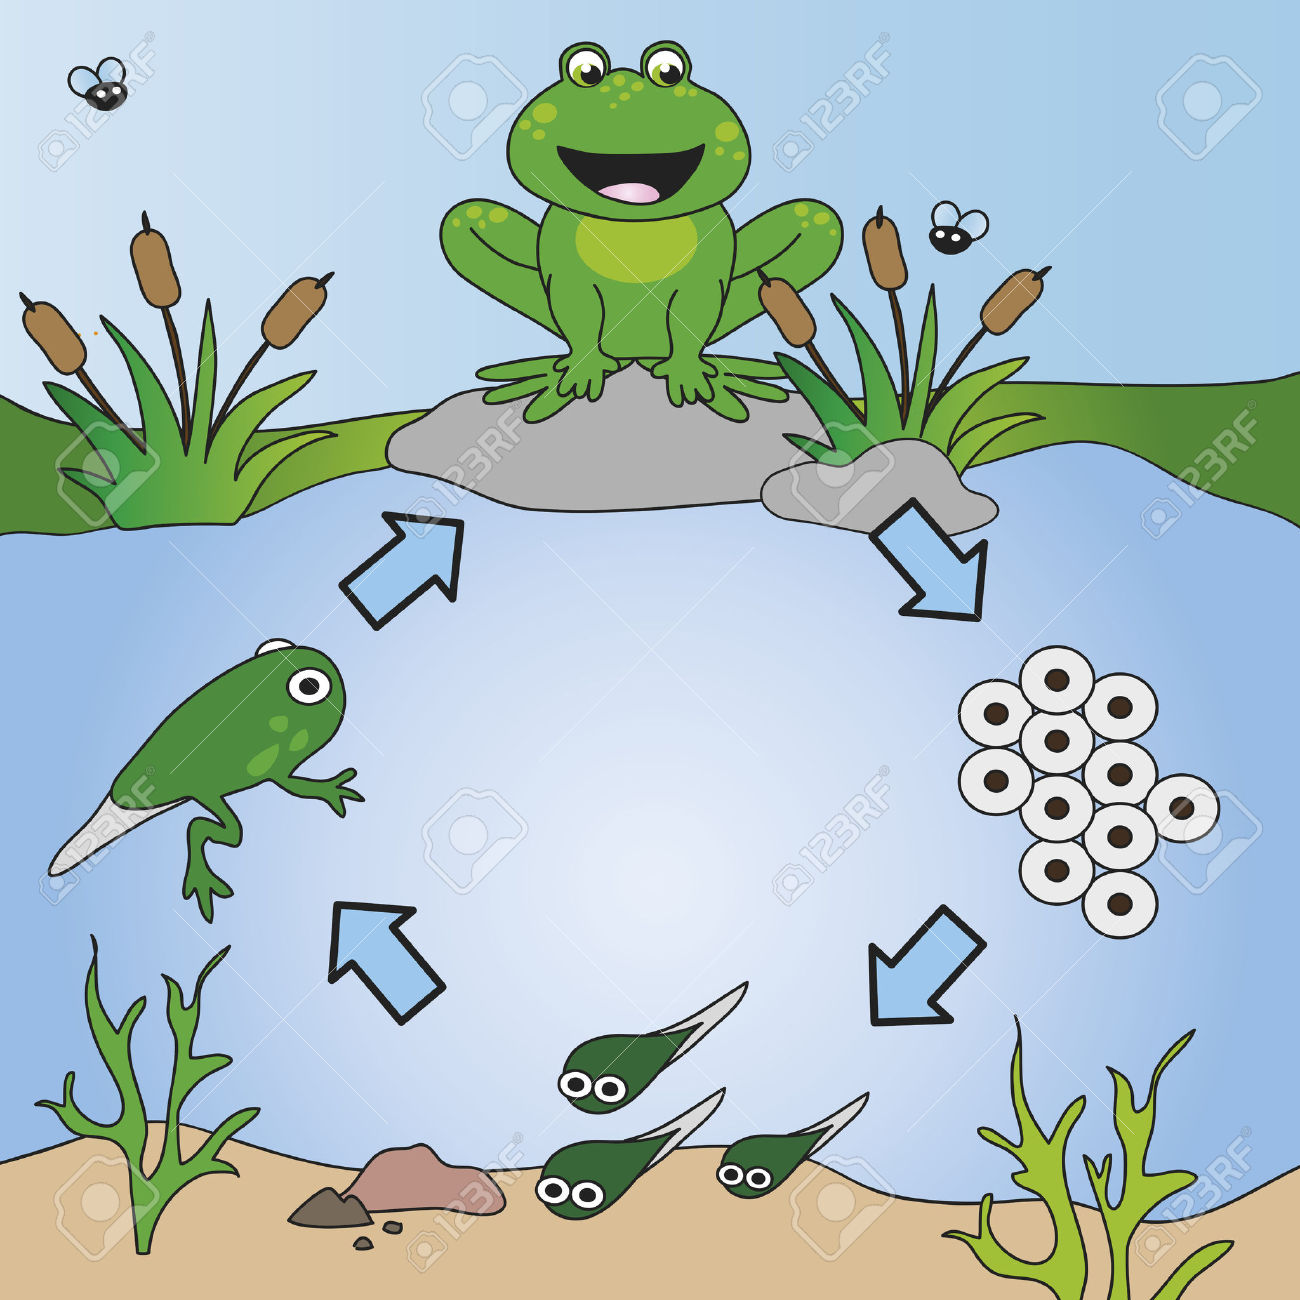 Frog cycle clipart image royalty free 6,516 Life Cycle Stock Vector Illustration And Royalty Free Life ... image royalty free